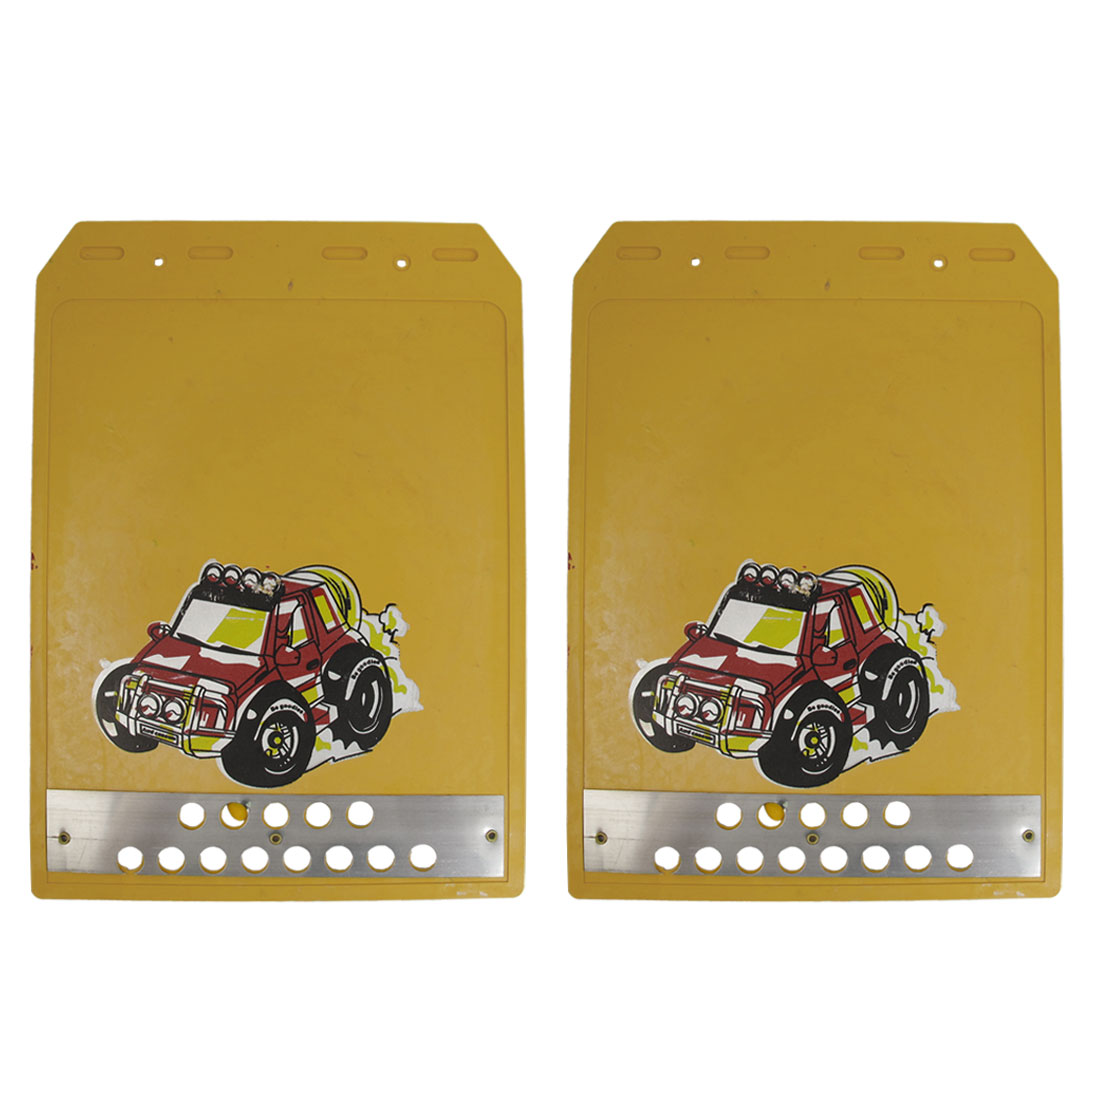 30cm x 21.5cm Truck SUV Metal Yellow Rubber Car Mud Guard Pair